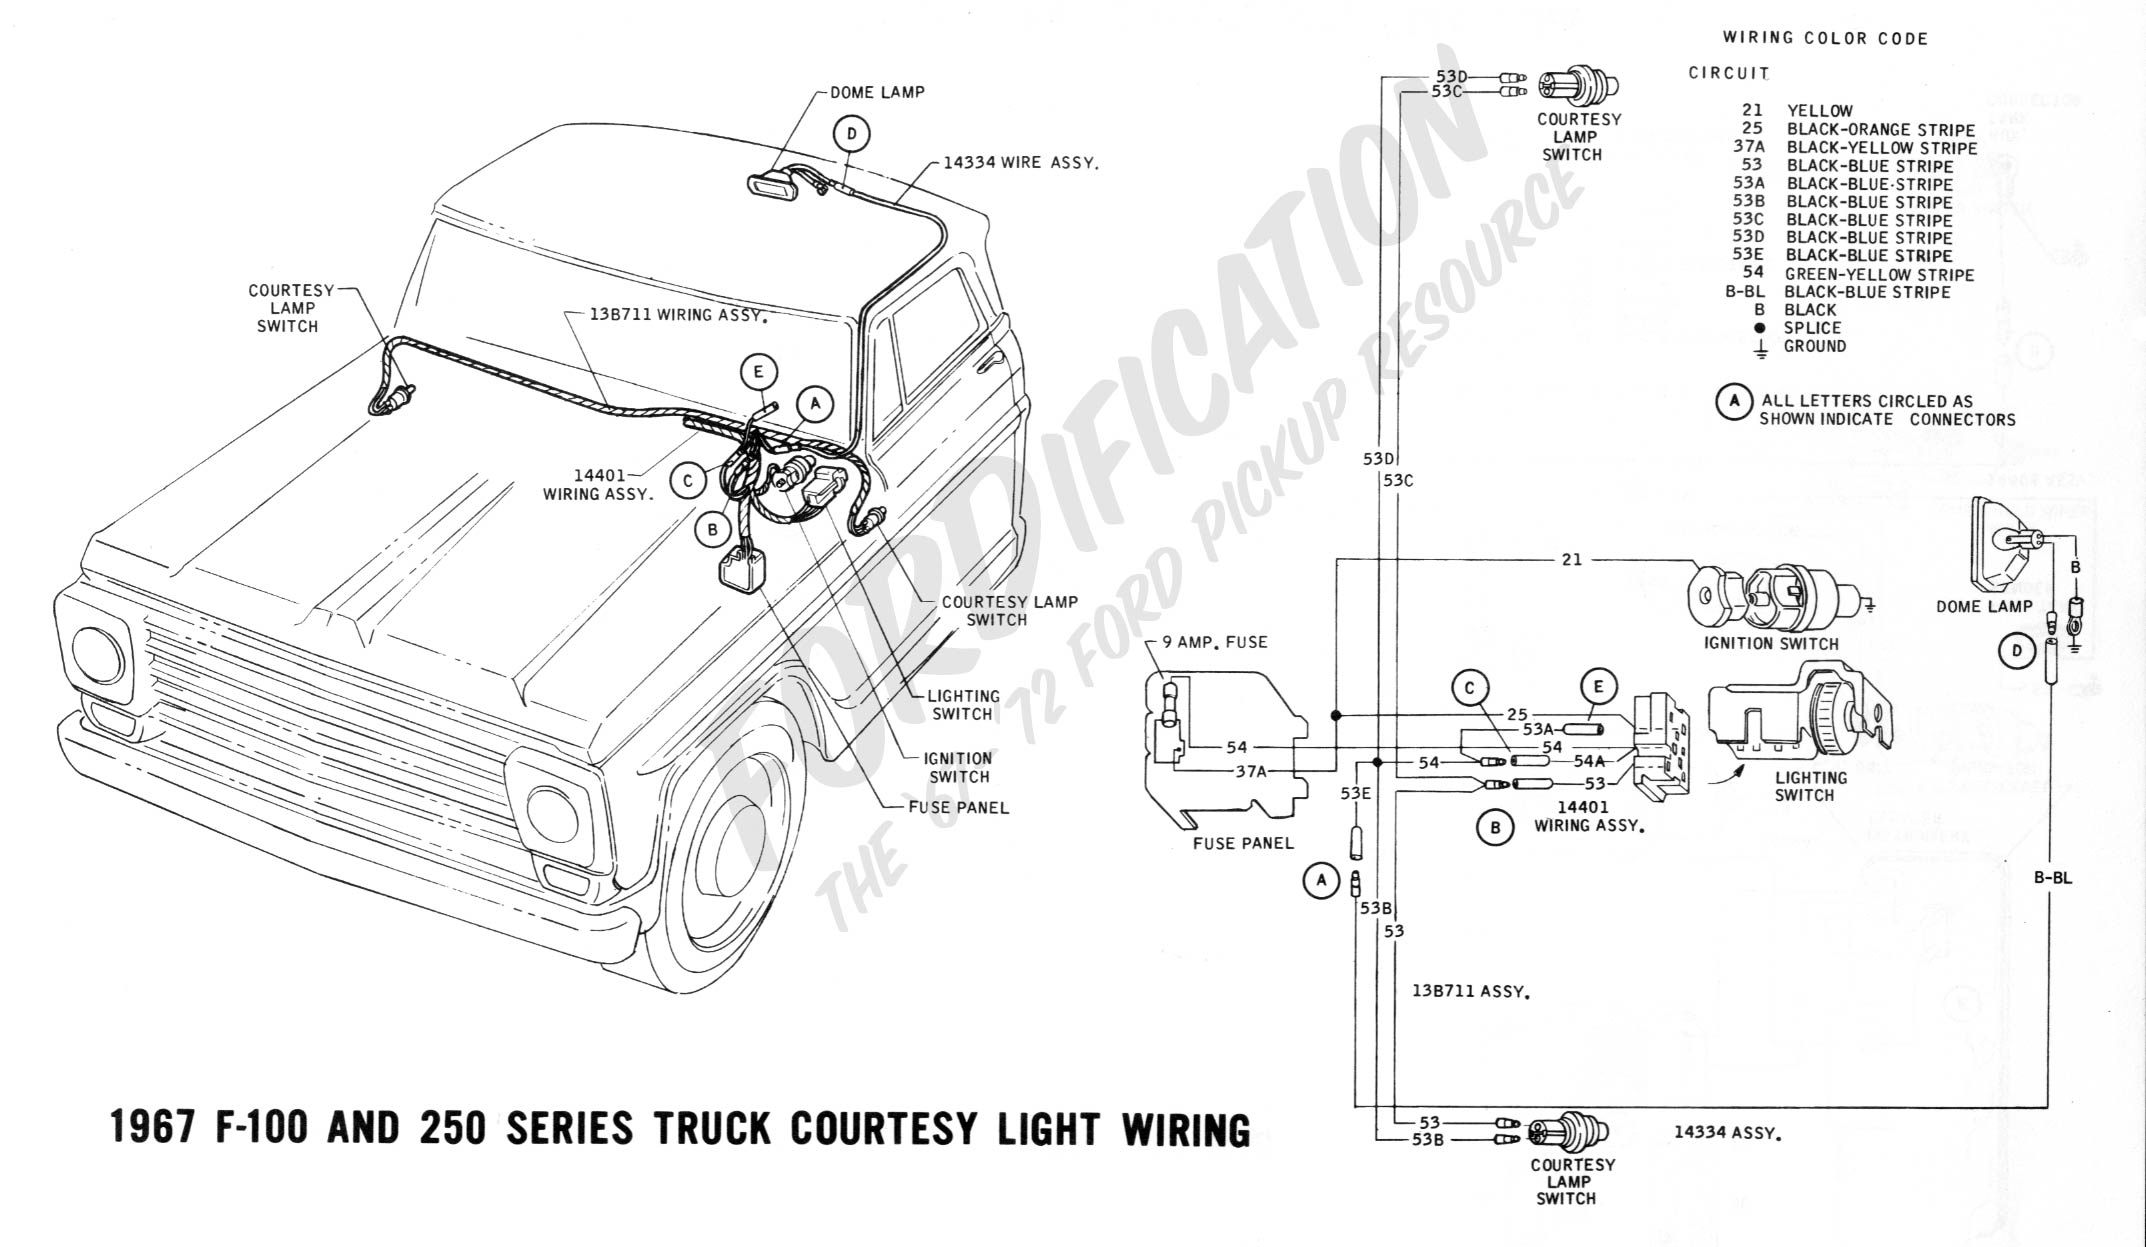 wiring 1967courtesylight wiring in ignition switch in 1966 f100 ford truck enthusiasts forums Ford E 350 Wiring Diagrams at eliteediting.co